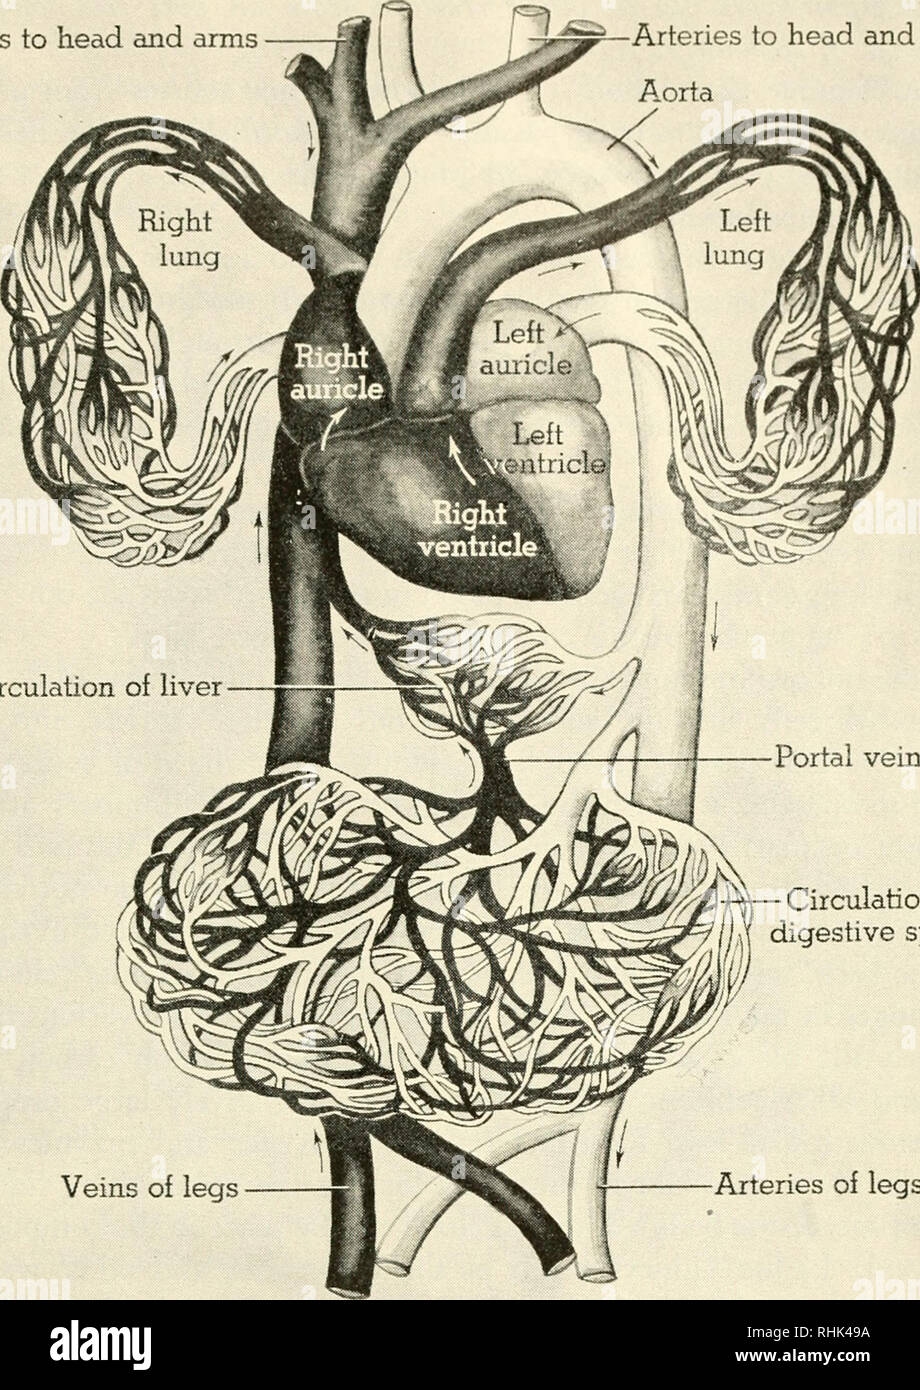 hight resolution of veins to head and arms arteries to head and arms aorta circulation of liver portal vein circulation of digestive system veins of legs arteries of